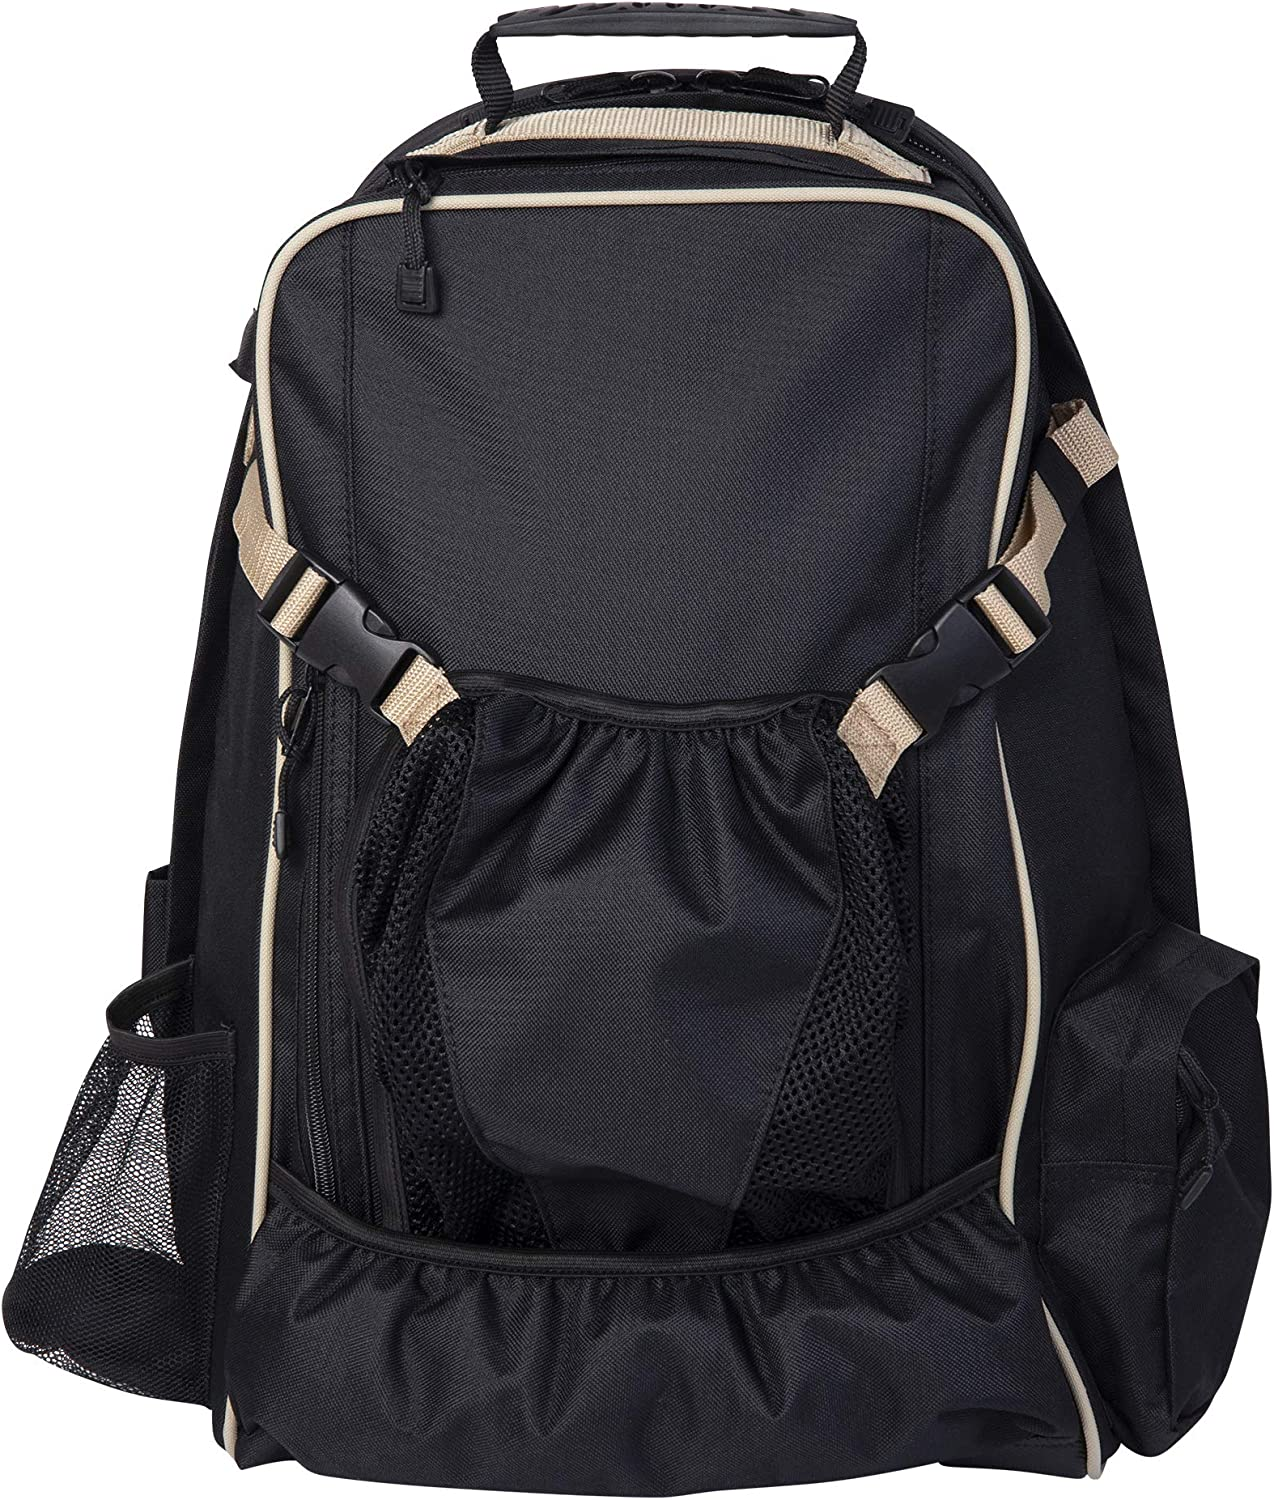 Huntley 2021 spring and summer All items free shipping new Equestrian Backpack One Size Black